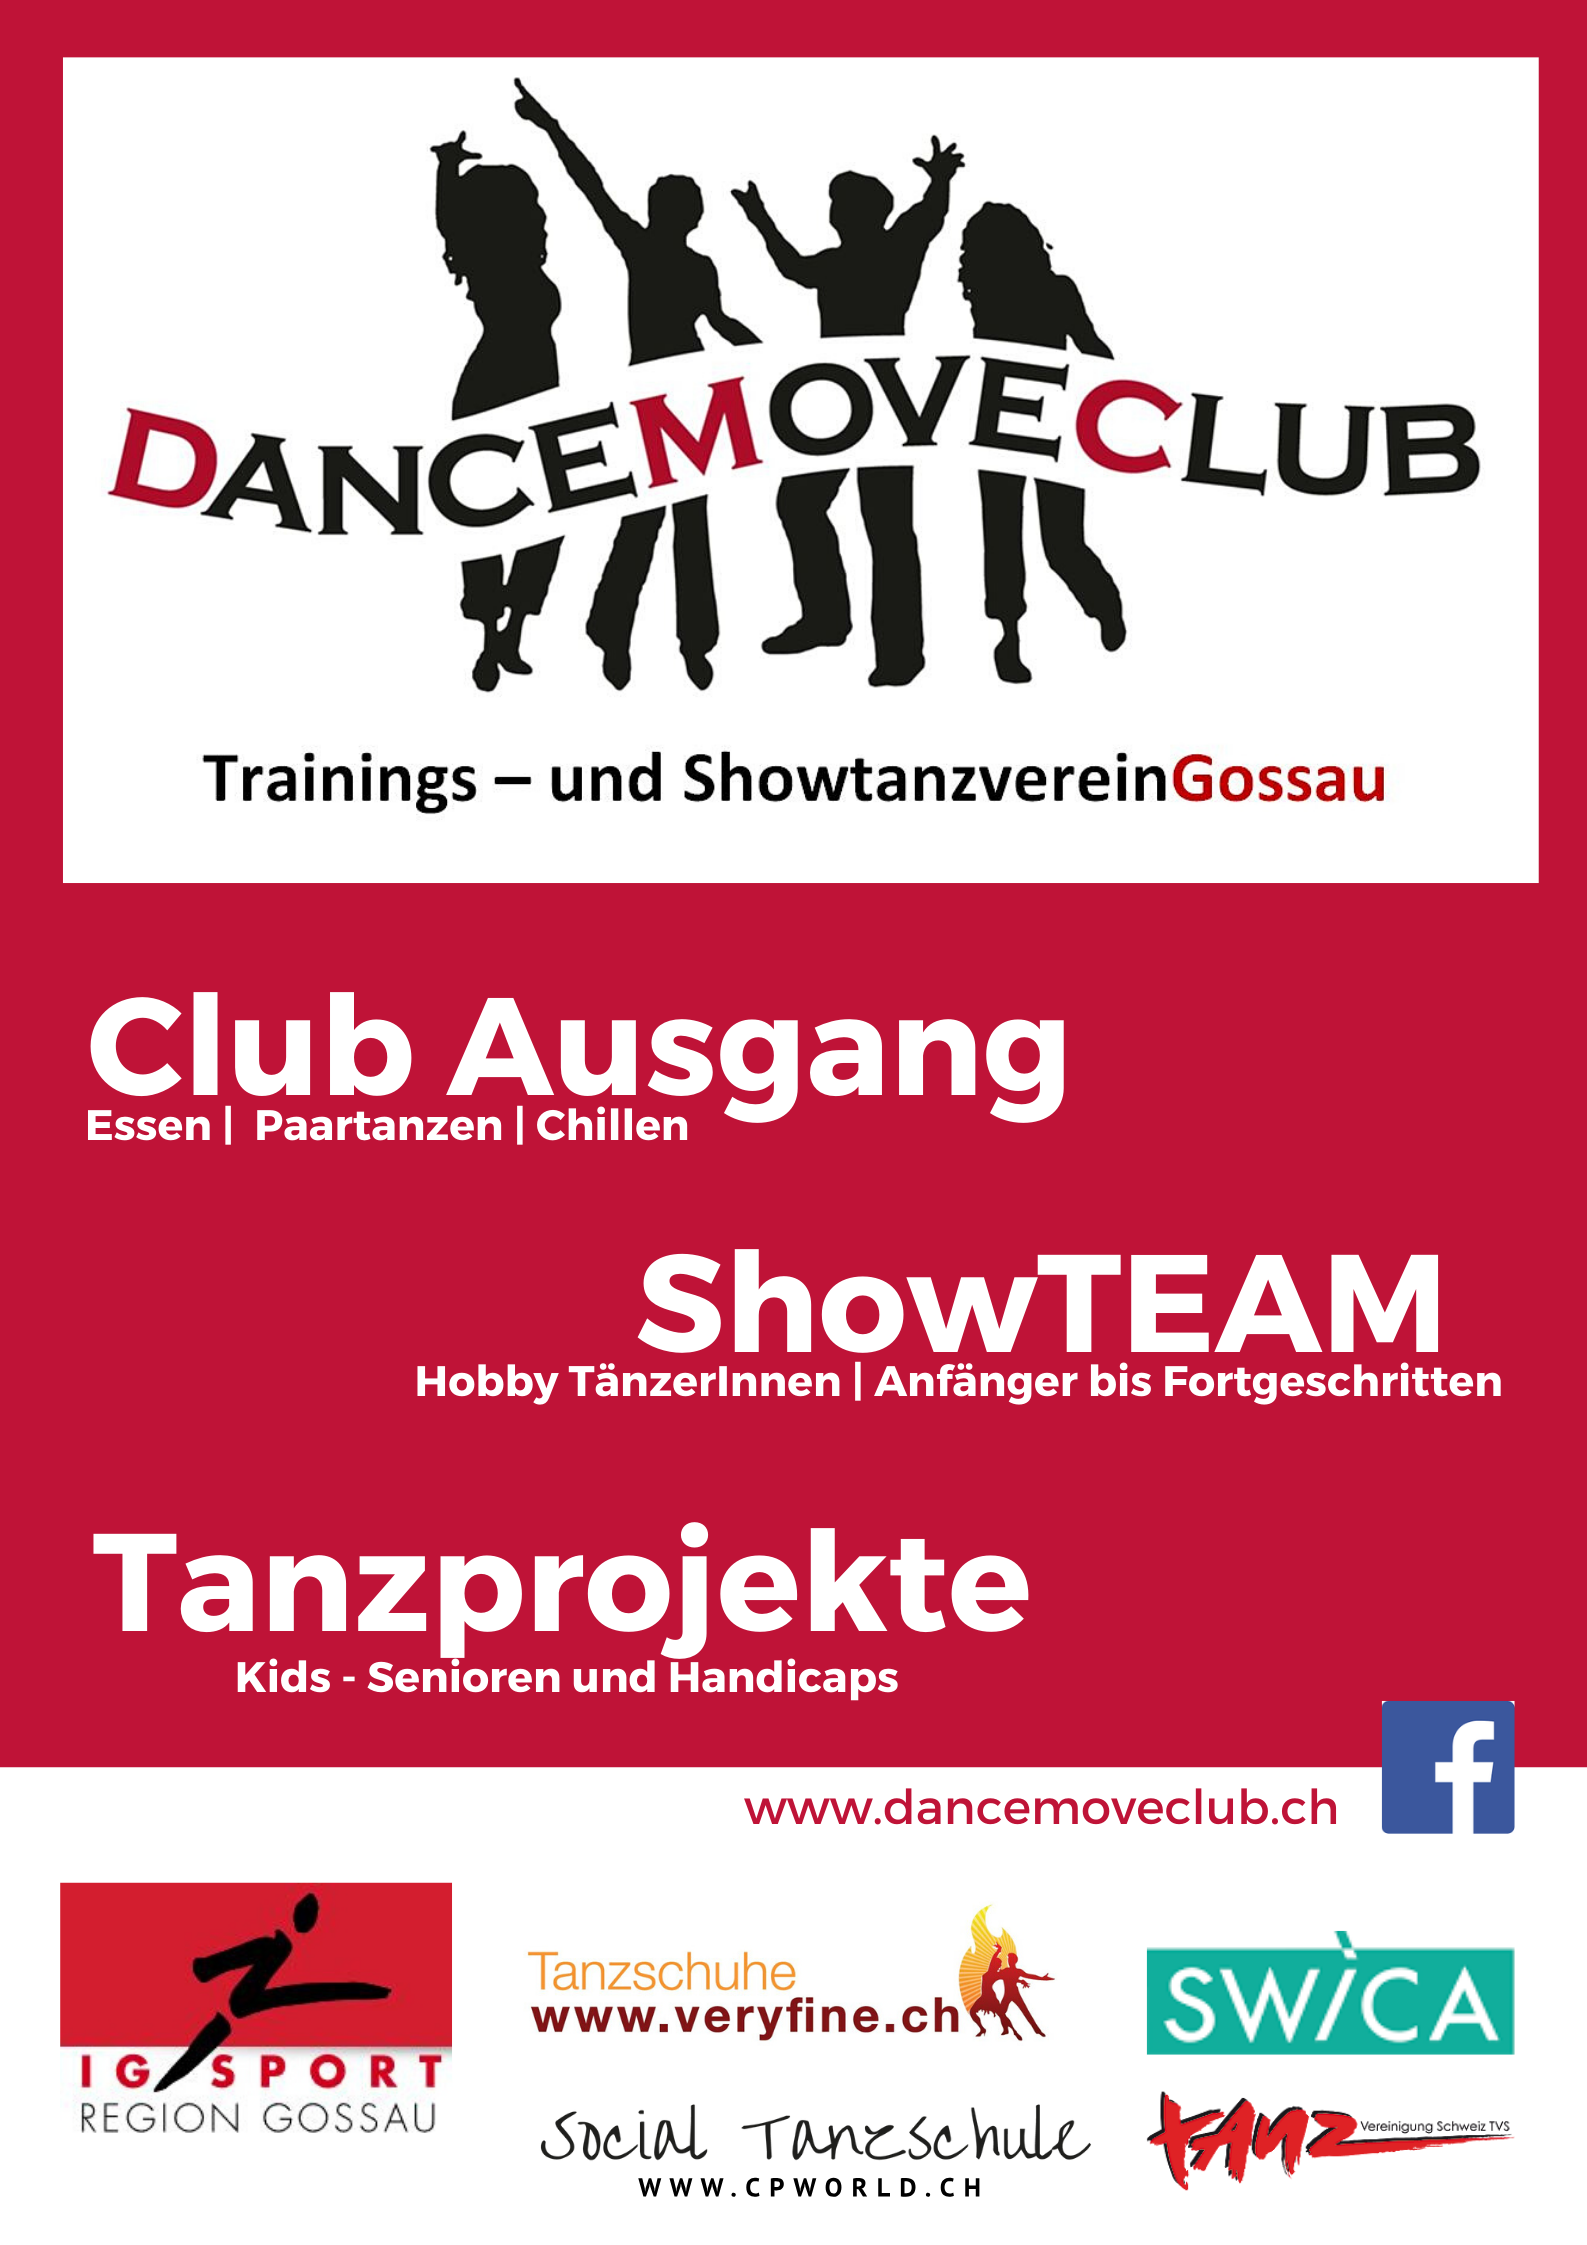 DanceMoveClub